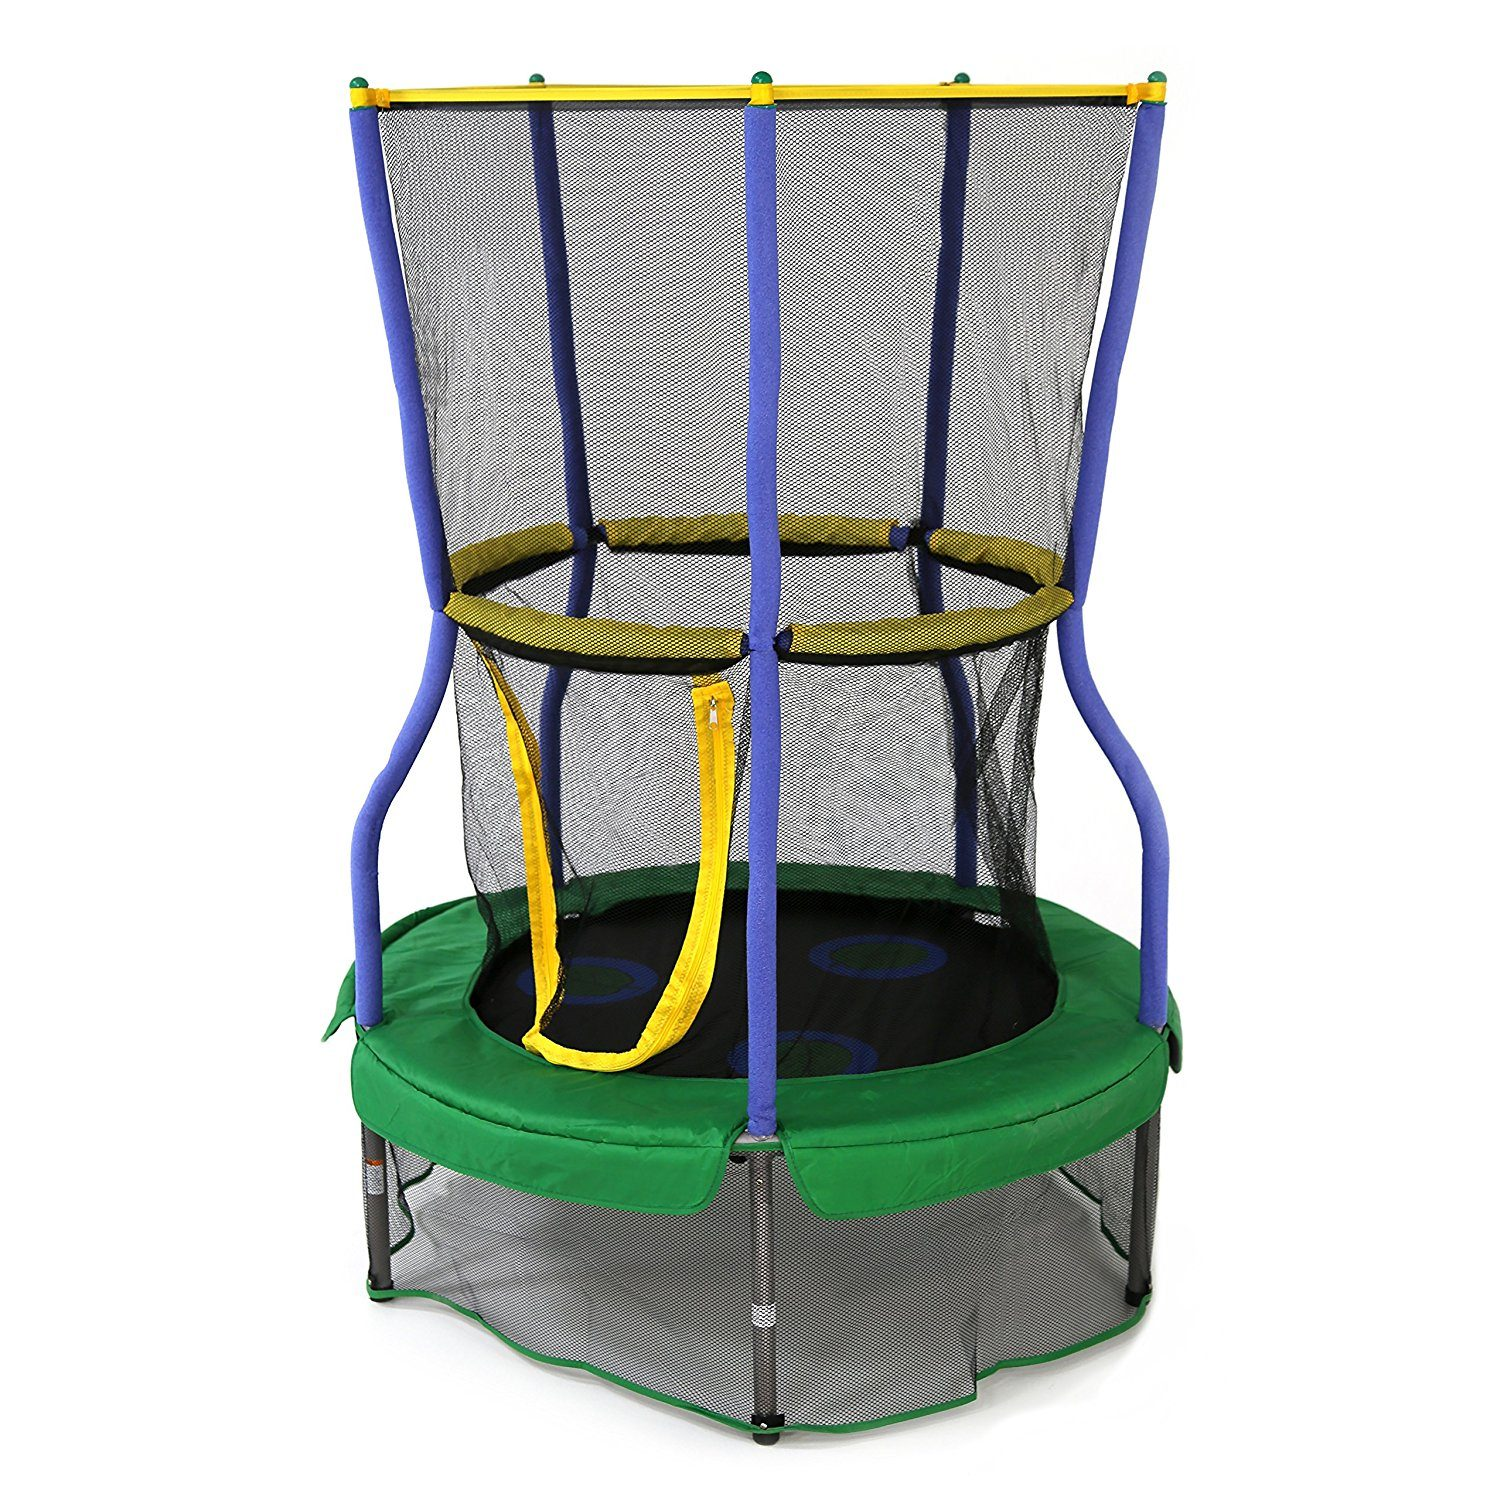 Kid Trampoline Lafayette: Get The Best Trampolines For Kids Here